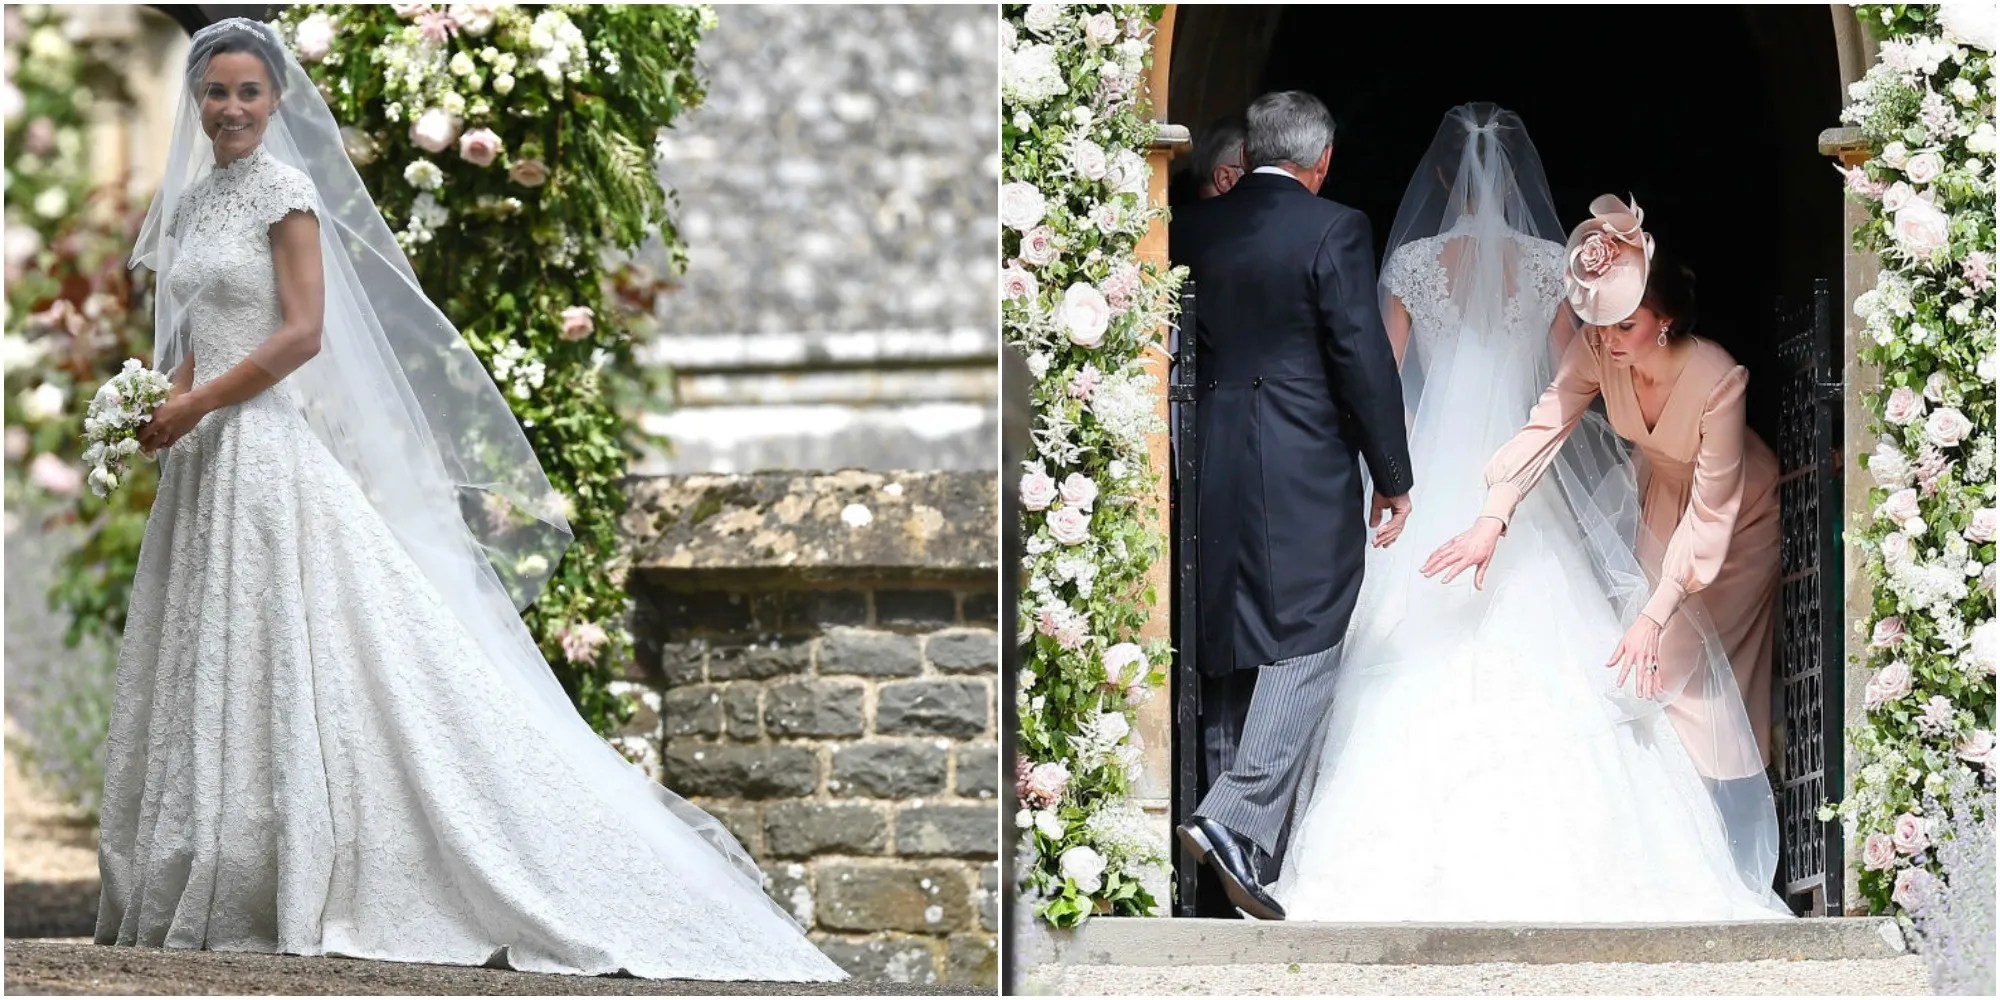 Pippa Middletons Wedding Dress Was A Lace Cap Sleeved